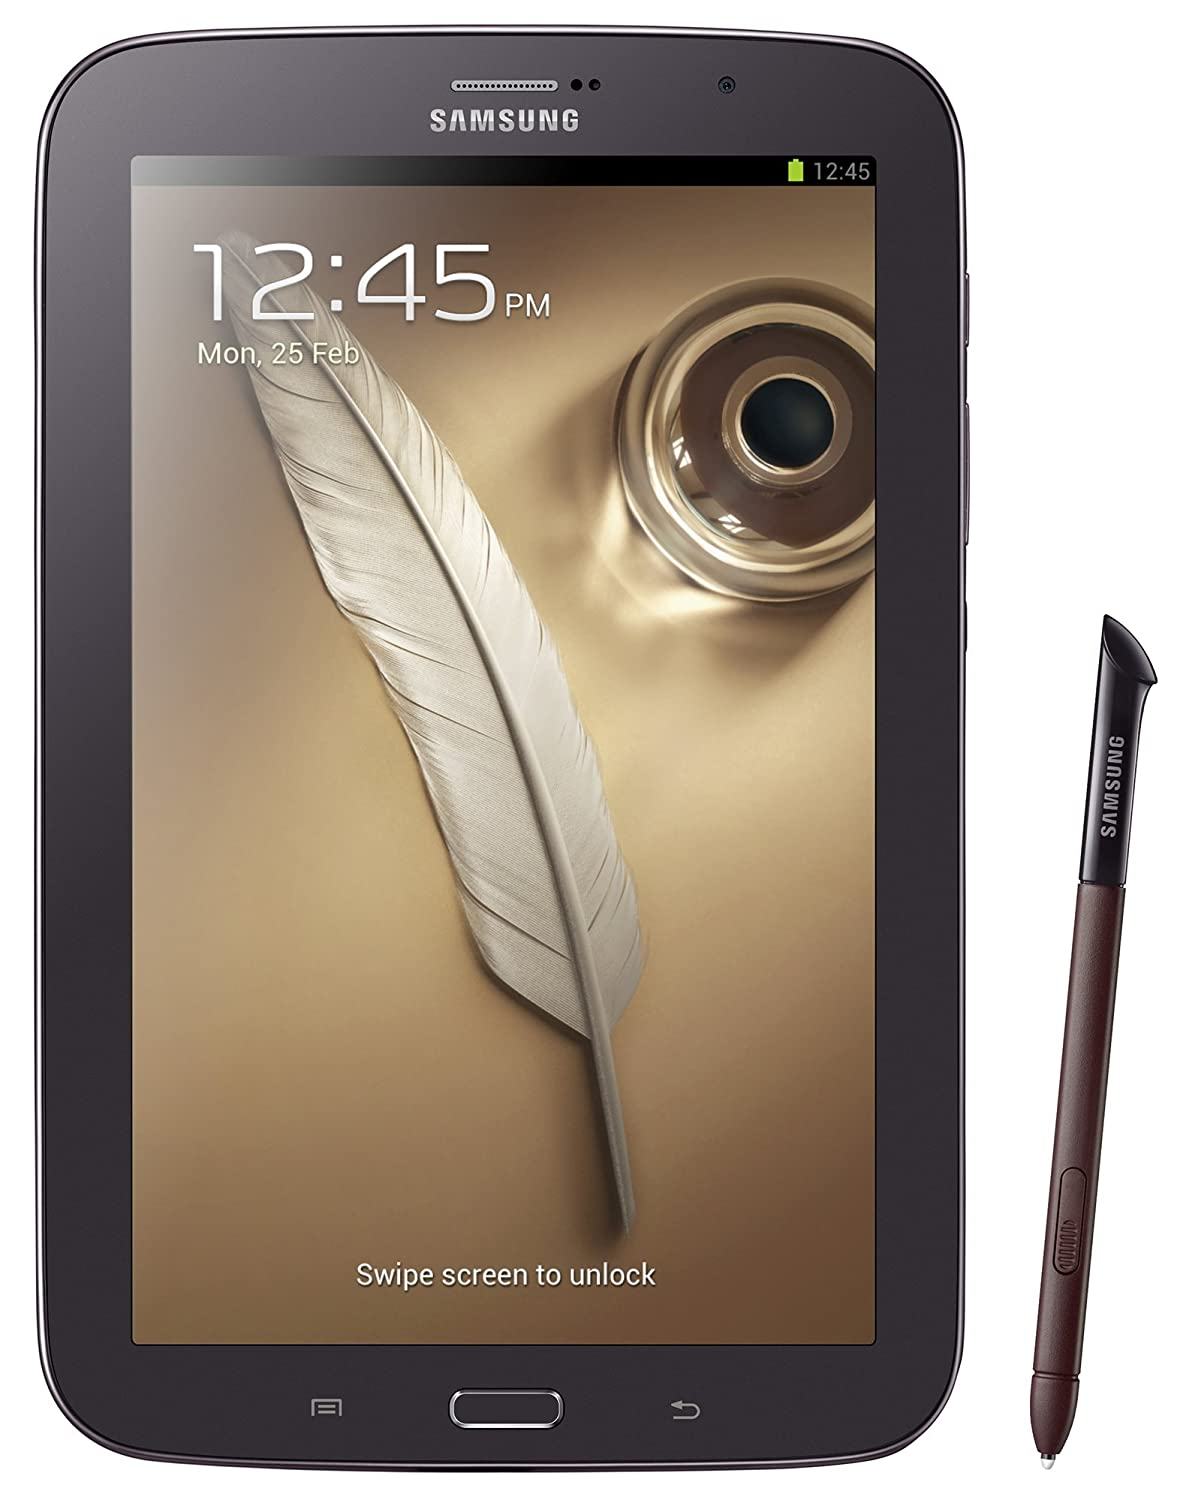 Samsung Galaxy Note 8.0 Android Tablet